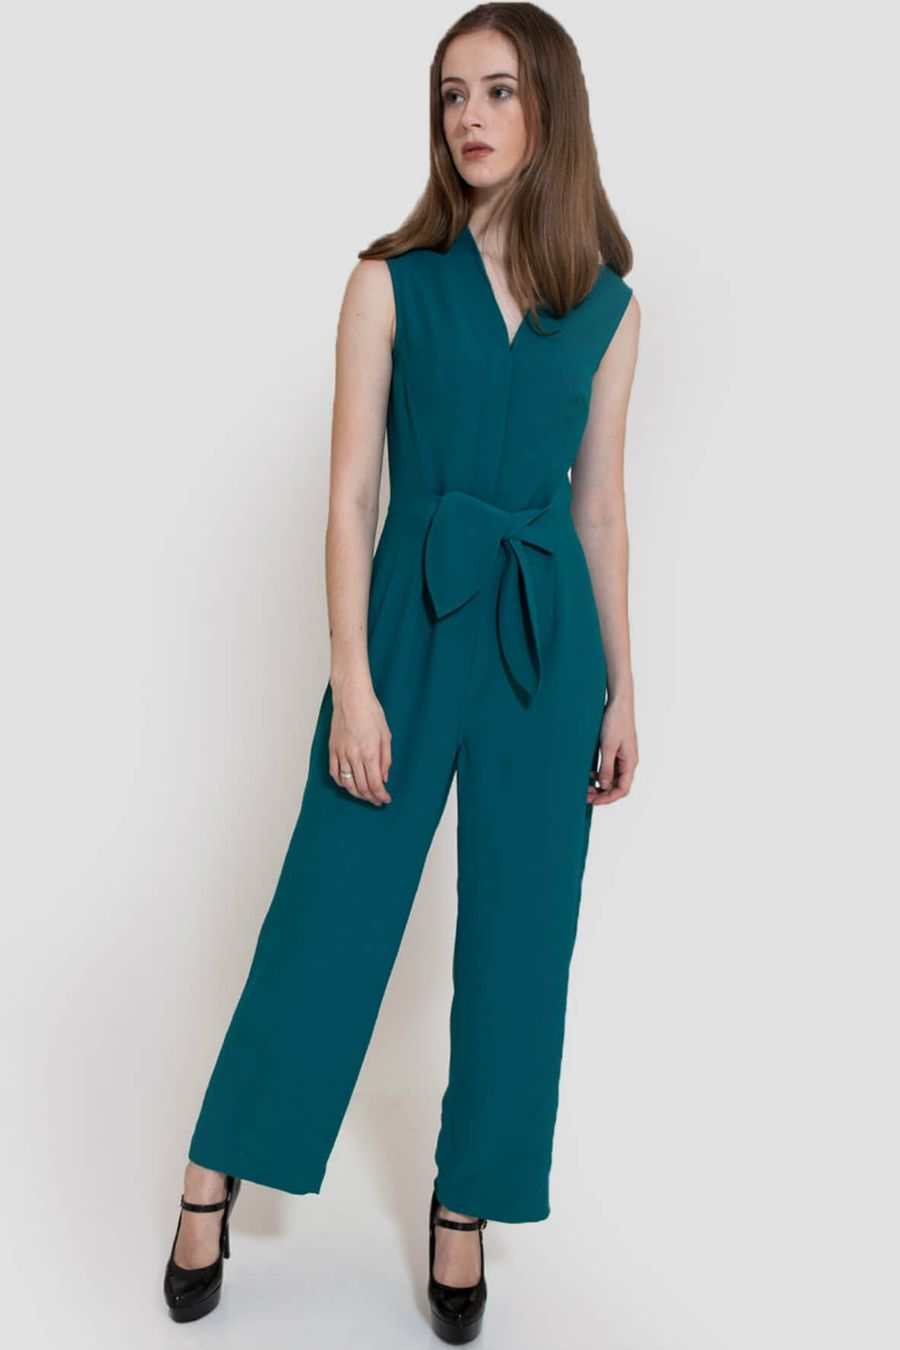 kraton-teal-jumpsuit-with-bow-belt-3